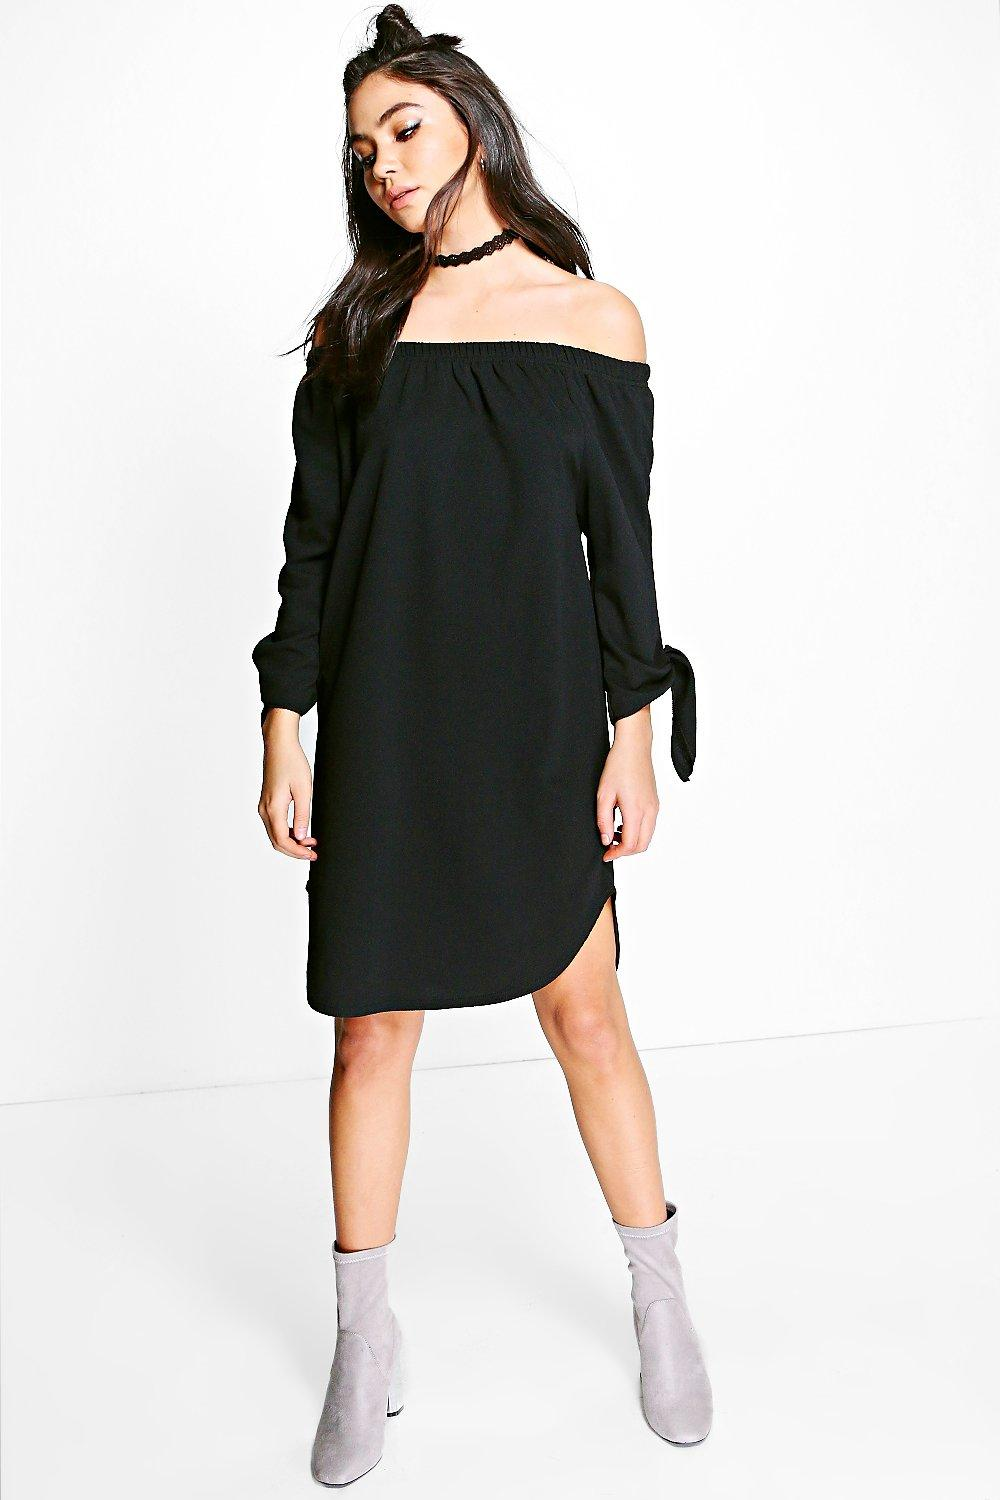 0247bcd404e Milly Off Shoulder Curved Hem Tie Shirt Dress. Hover to zoom